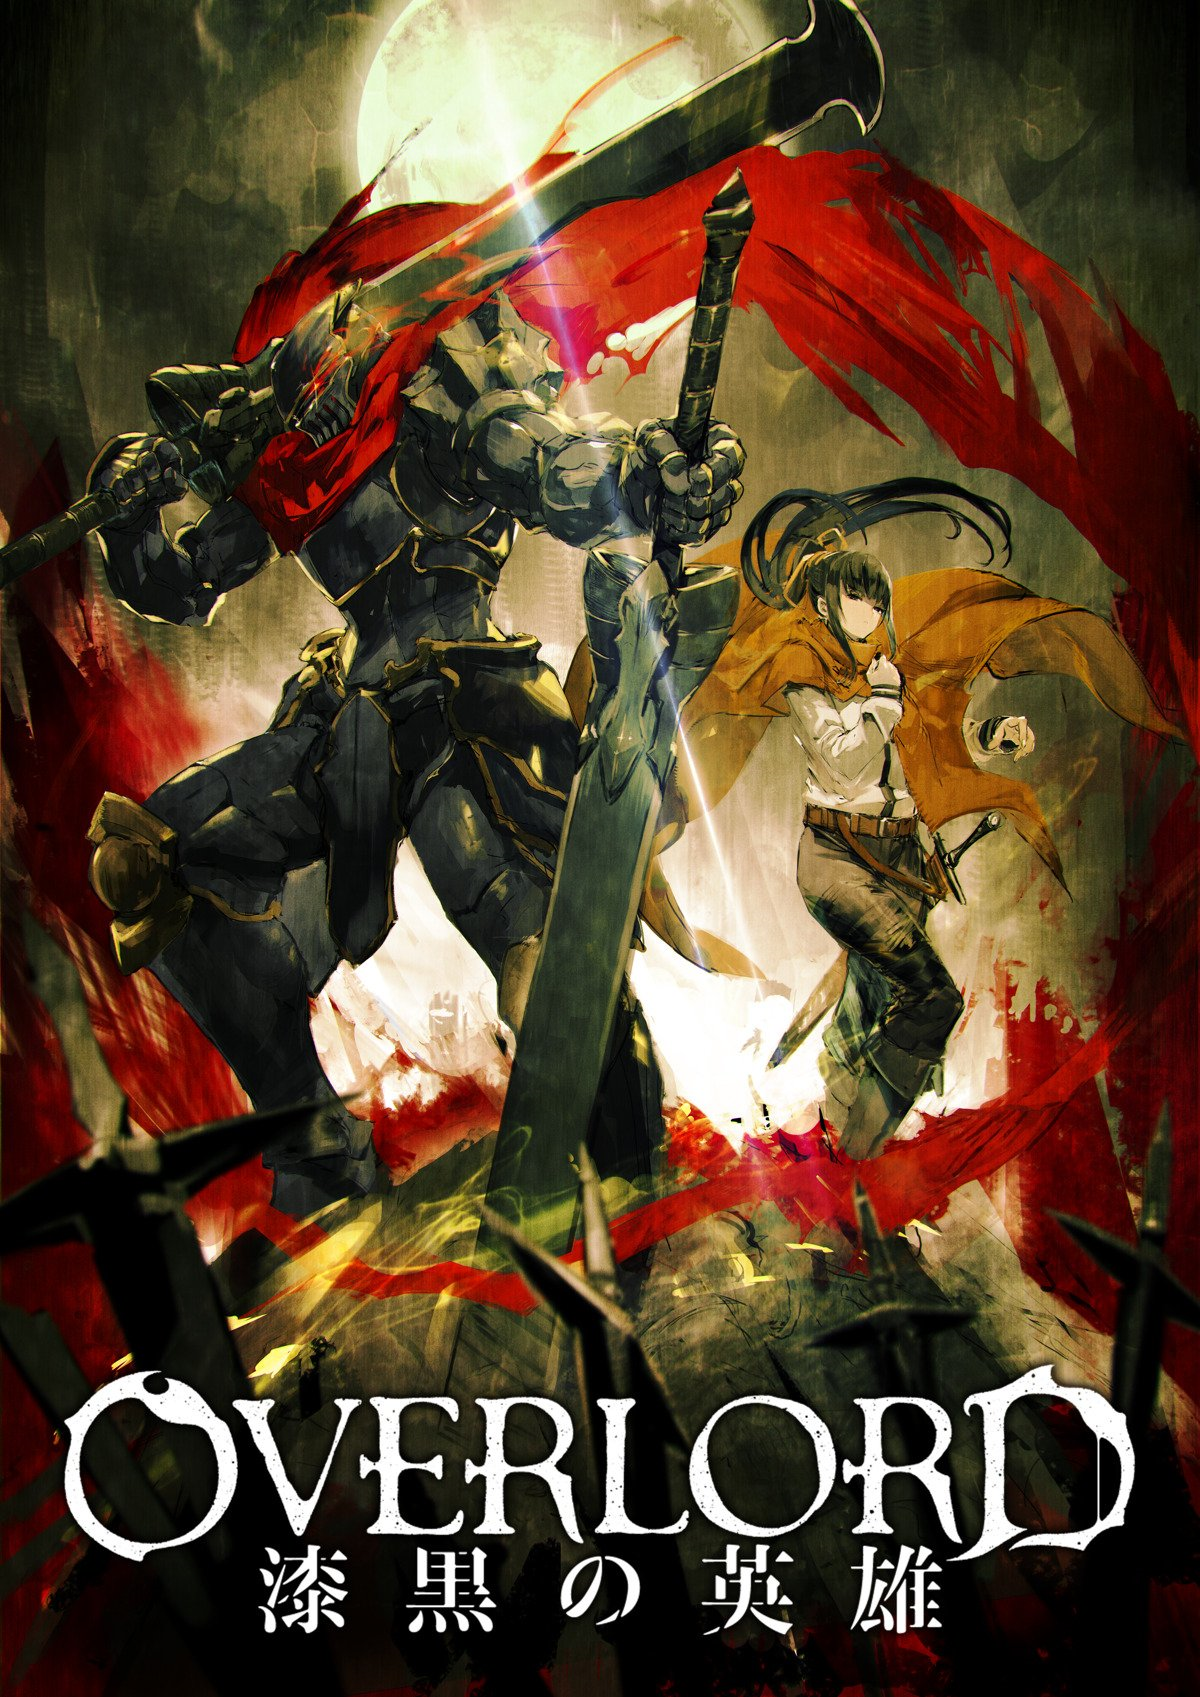 Overlord: The Dark Warrior | Overlord Wiki | FANDOM powered